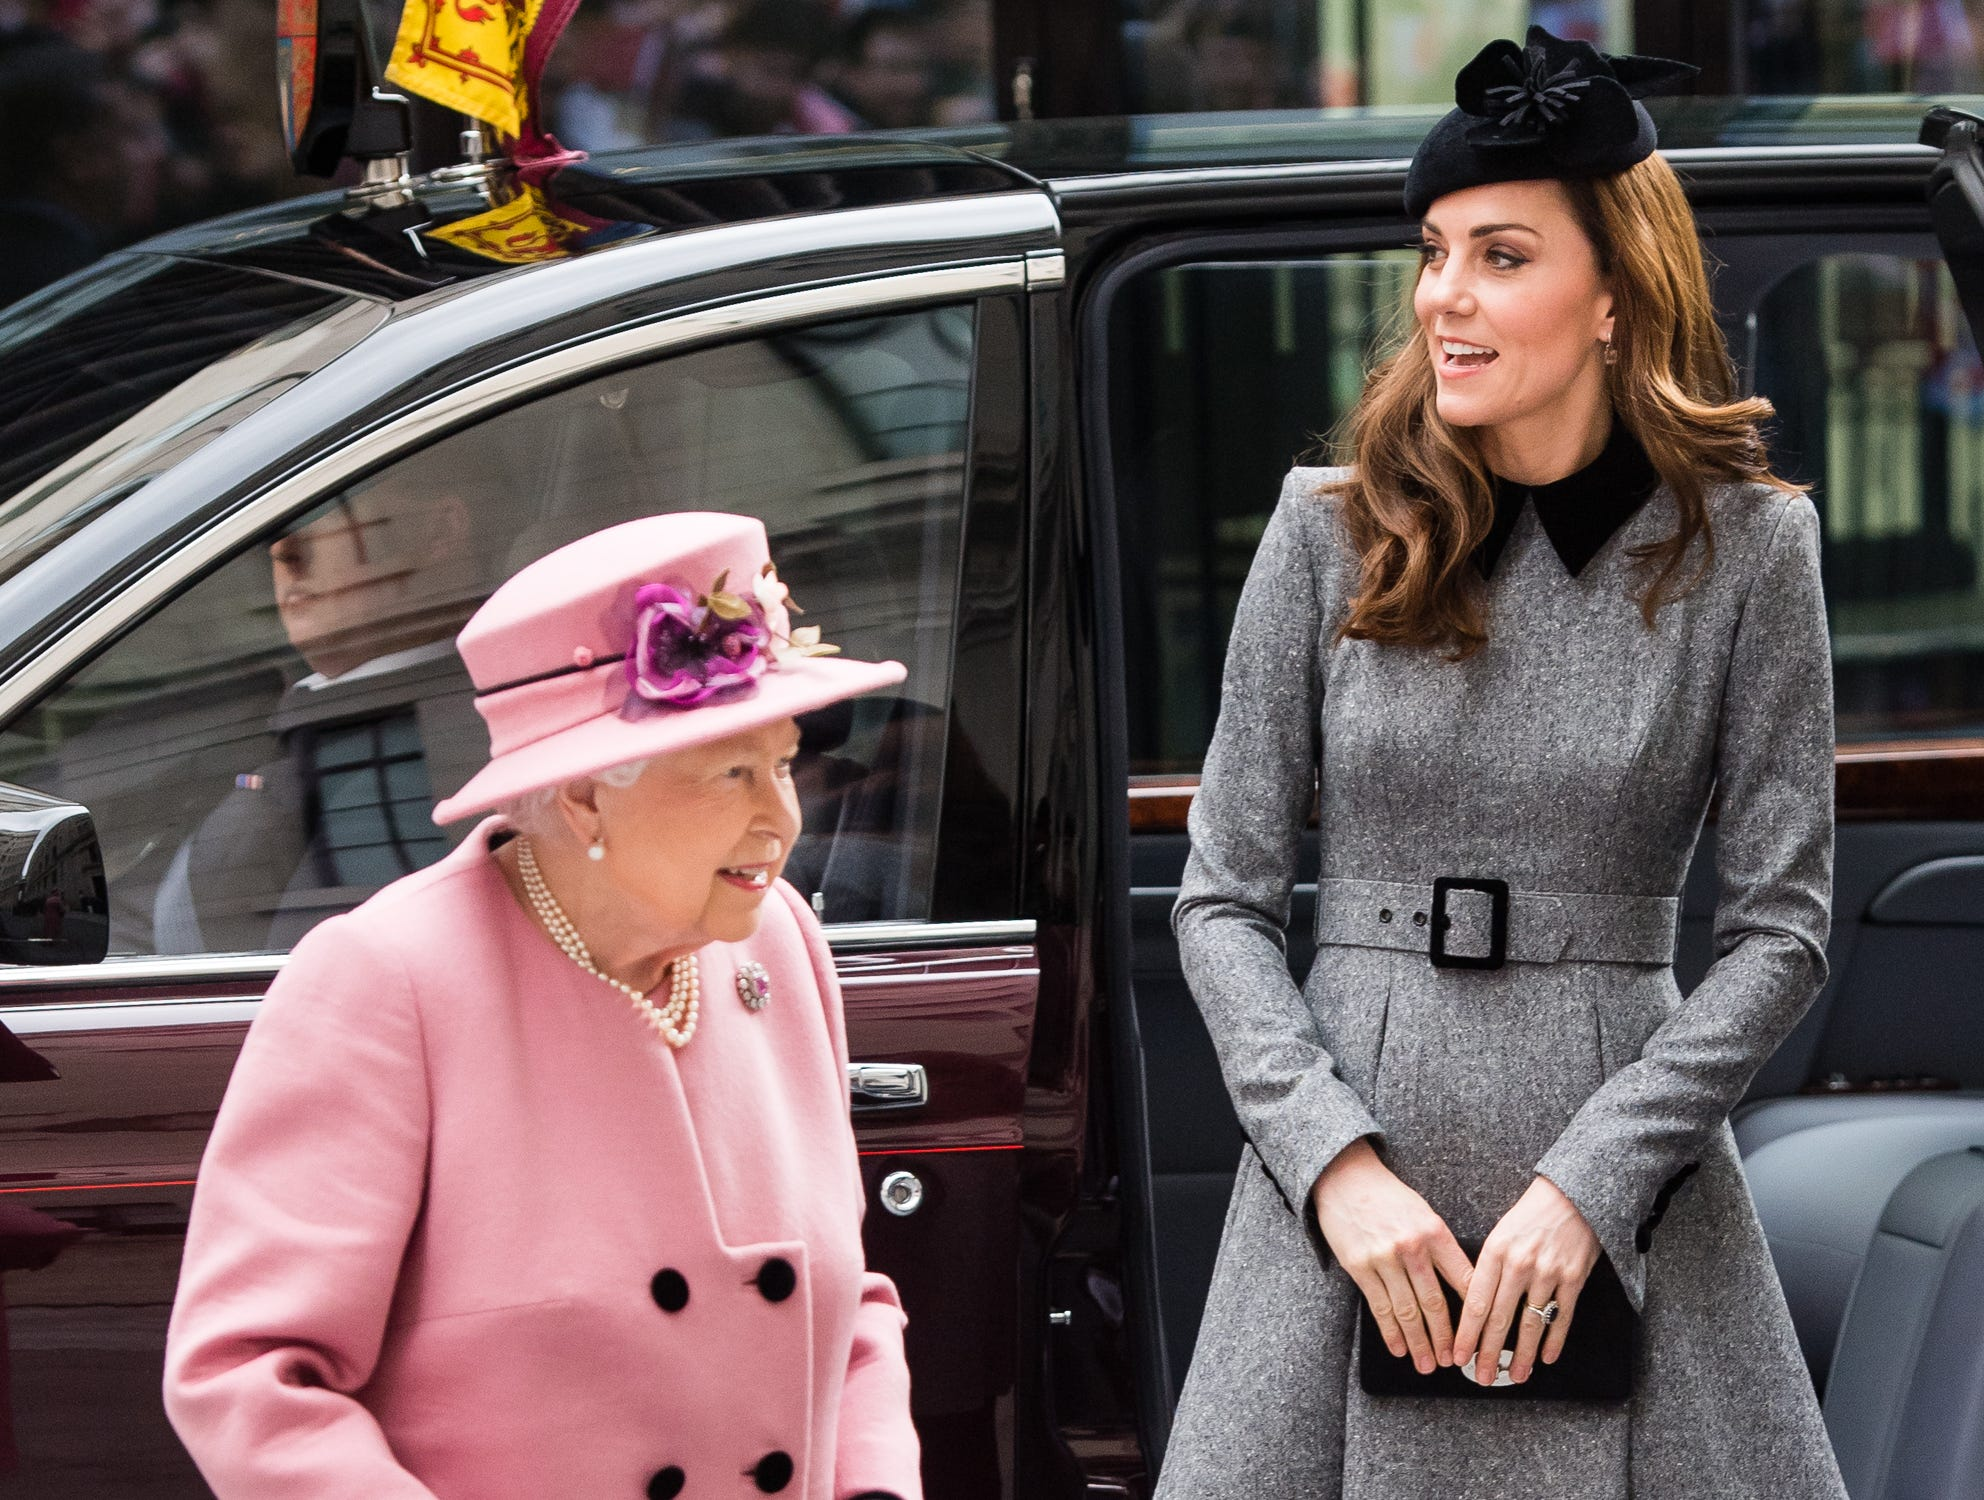 Queen Elizabeth II and Catherine, Duchess of Cambridge visit King's College London on March 19, 2019 in London, England to officially open Bush House, the latest education and learning facilities on the Strand Campus.